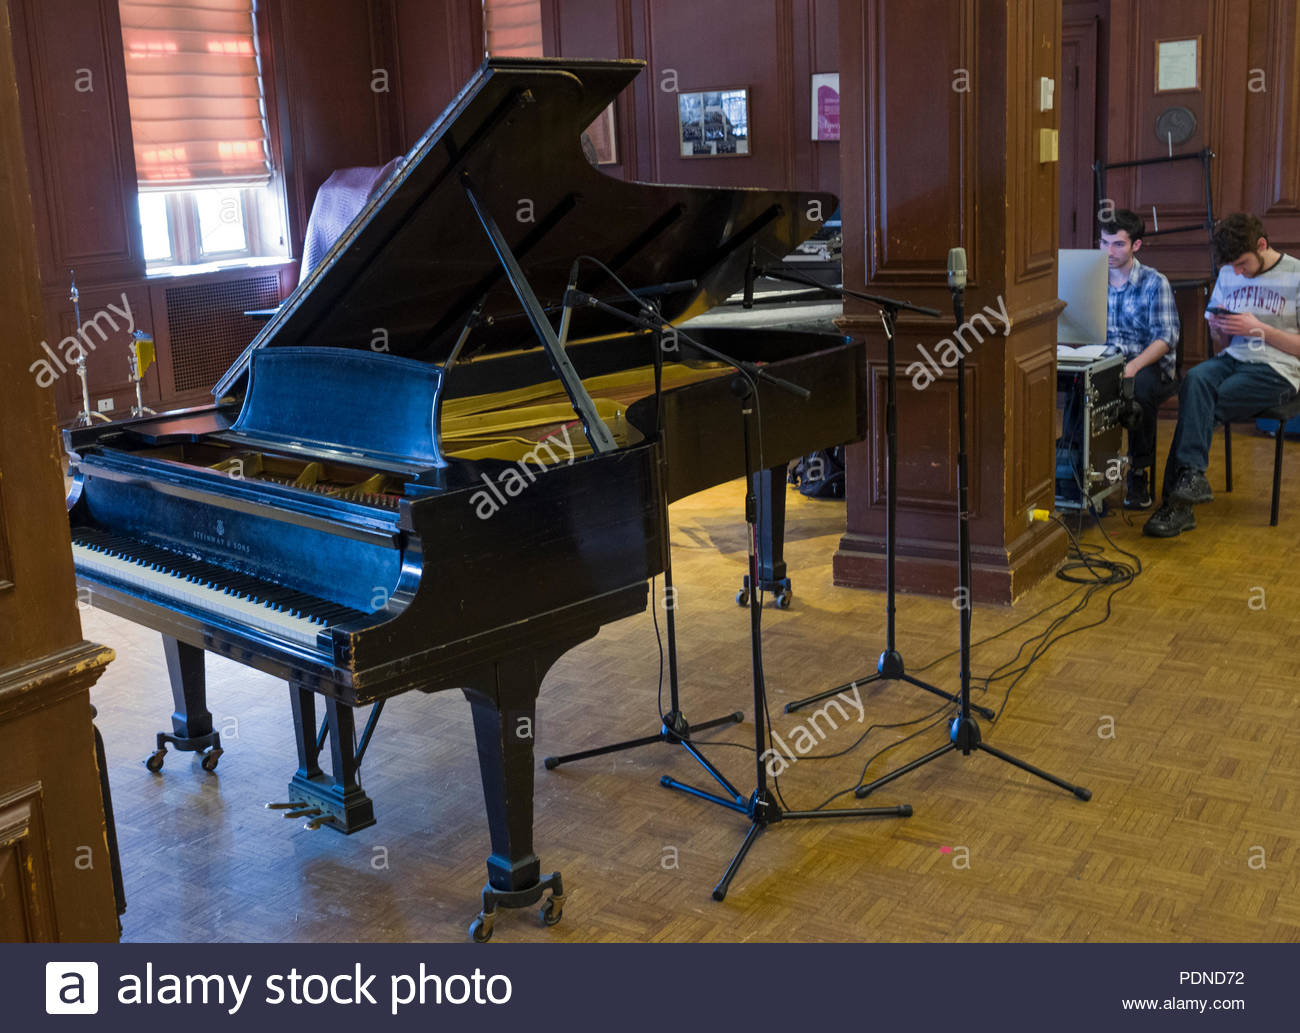 Microphones set to record performance on Grand Piano in recital hall, Alden Memorial auditorium, Worcester Polytechnic Institute, Worcester, Massachus - Stock Image